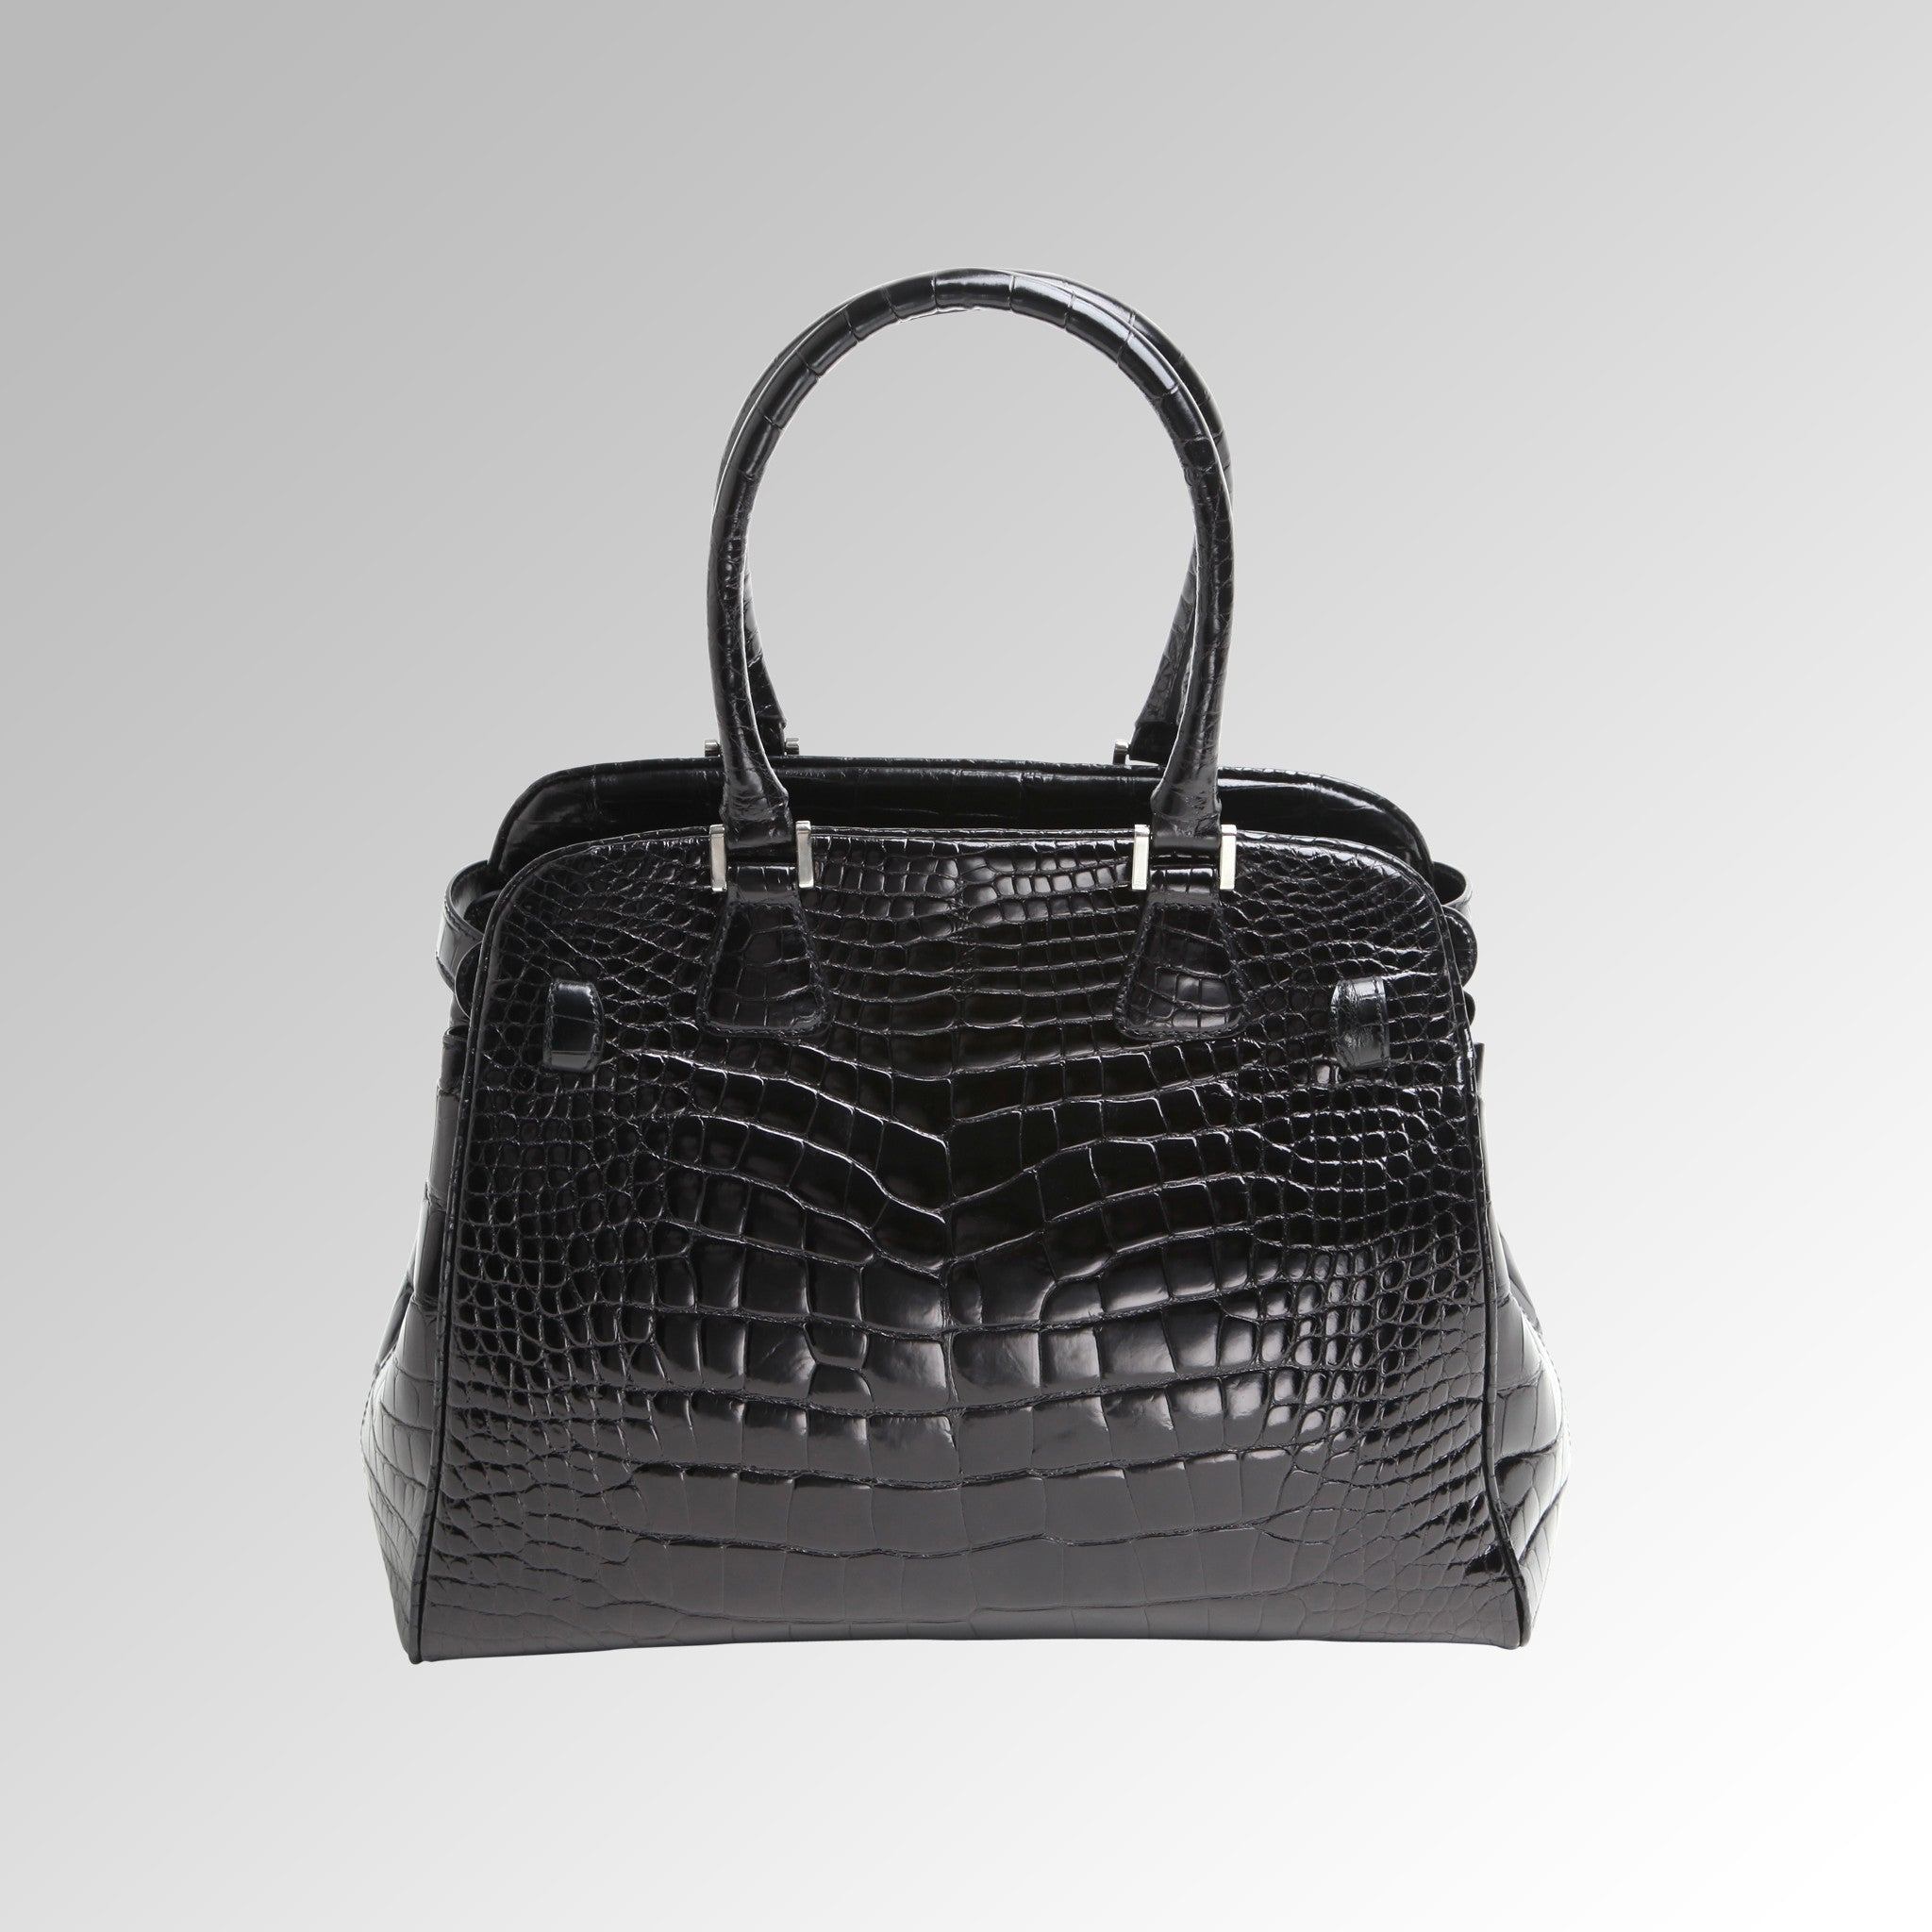 ALLIGATOR TOP HANDLE BAG